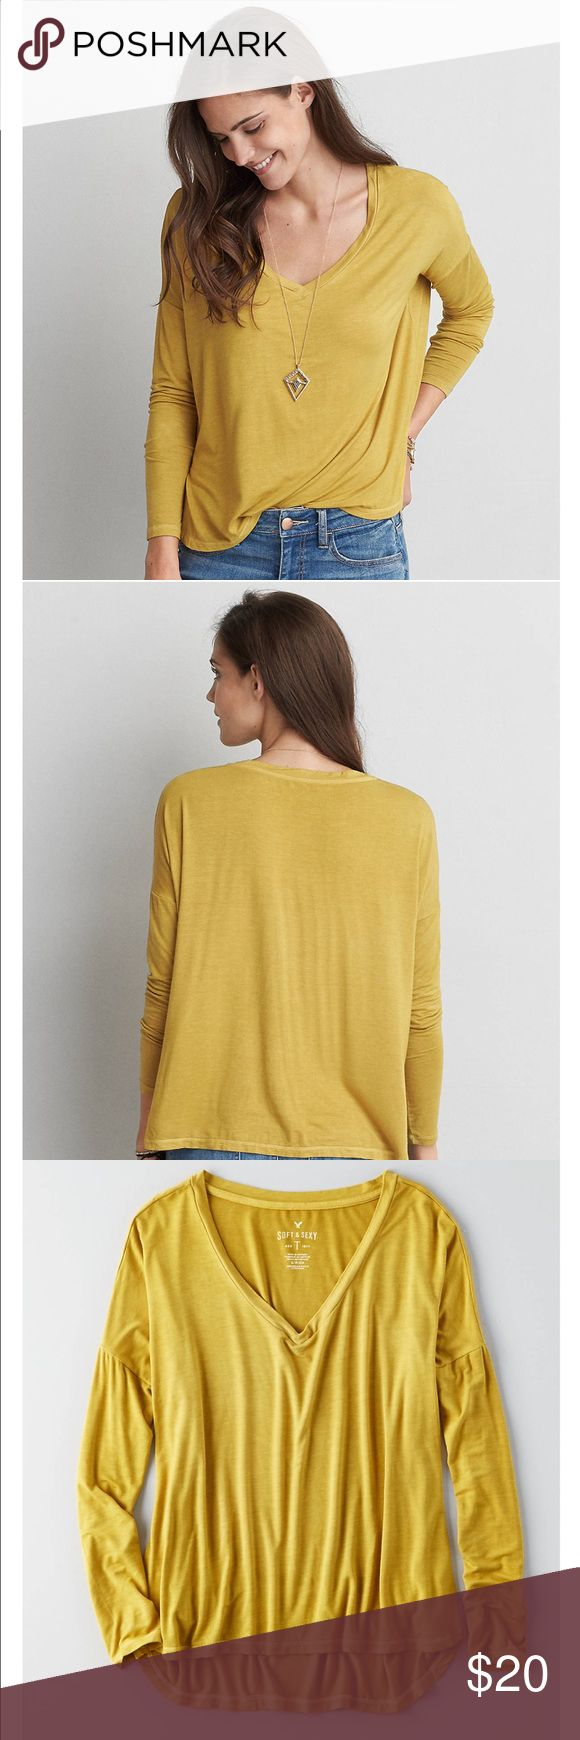 ~ NWT American Eagle Yellow/Green Long Sleeve ~ I order 2 of these shirts online by accident. Kept one and the other one is still in the packaging so brand new! Size m. American Eagle Outfitters Tops Tees - Long Sleeve